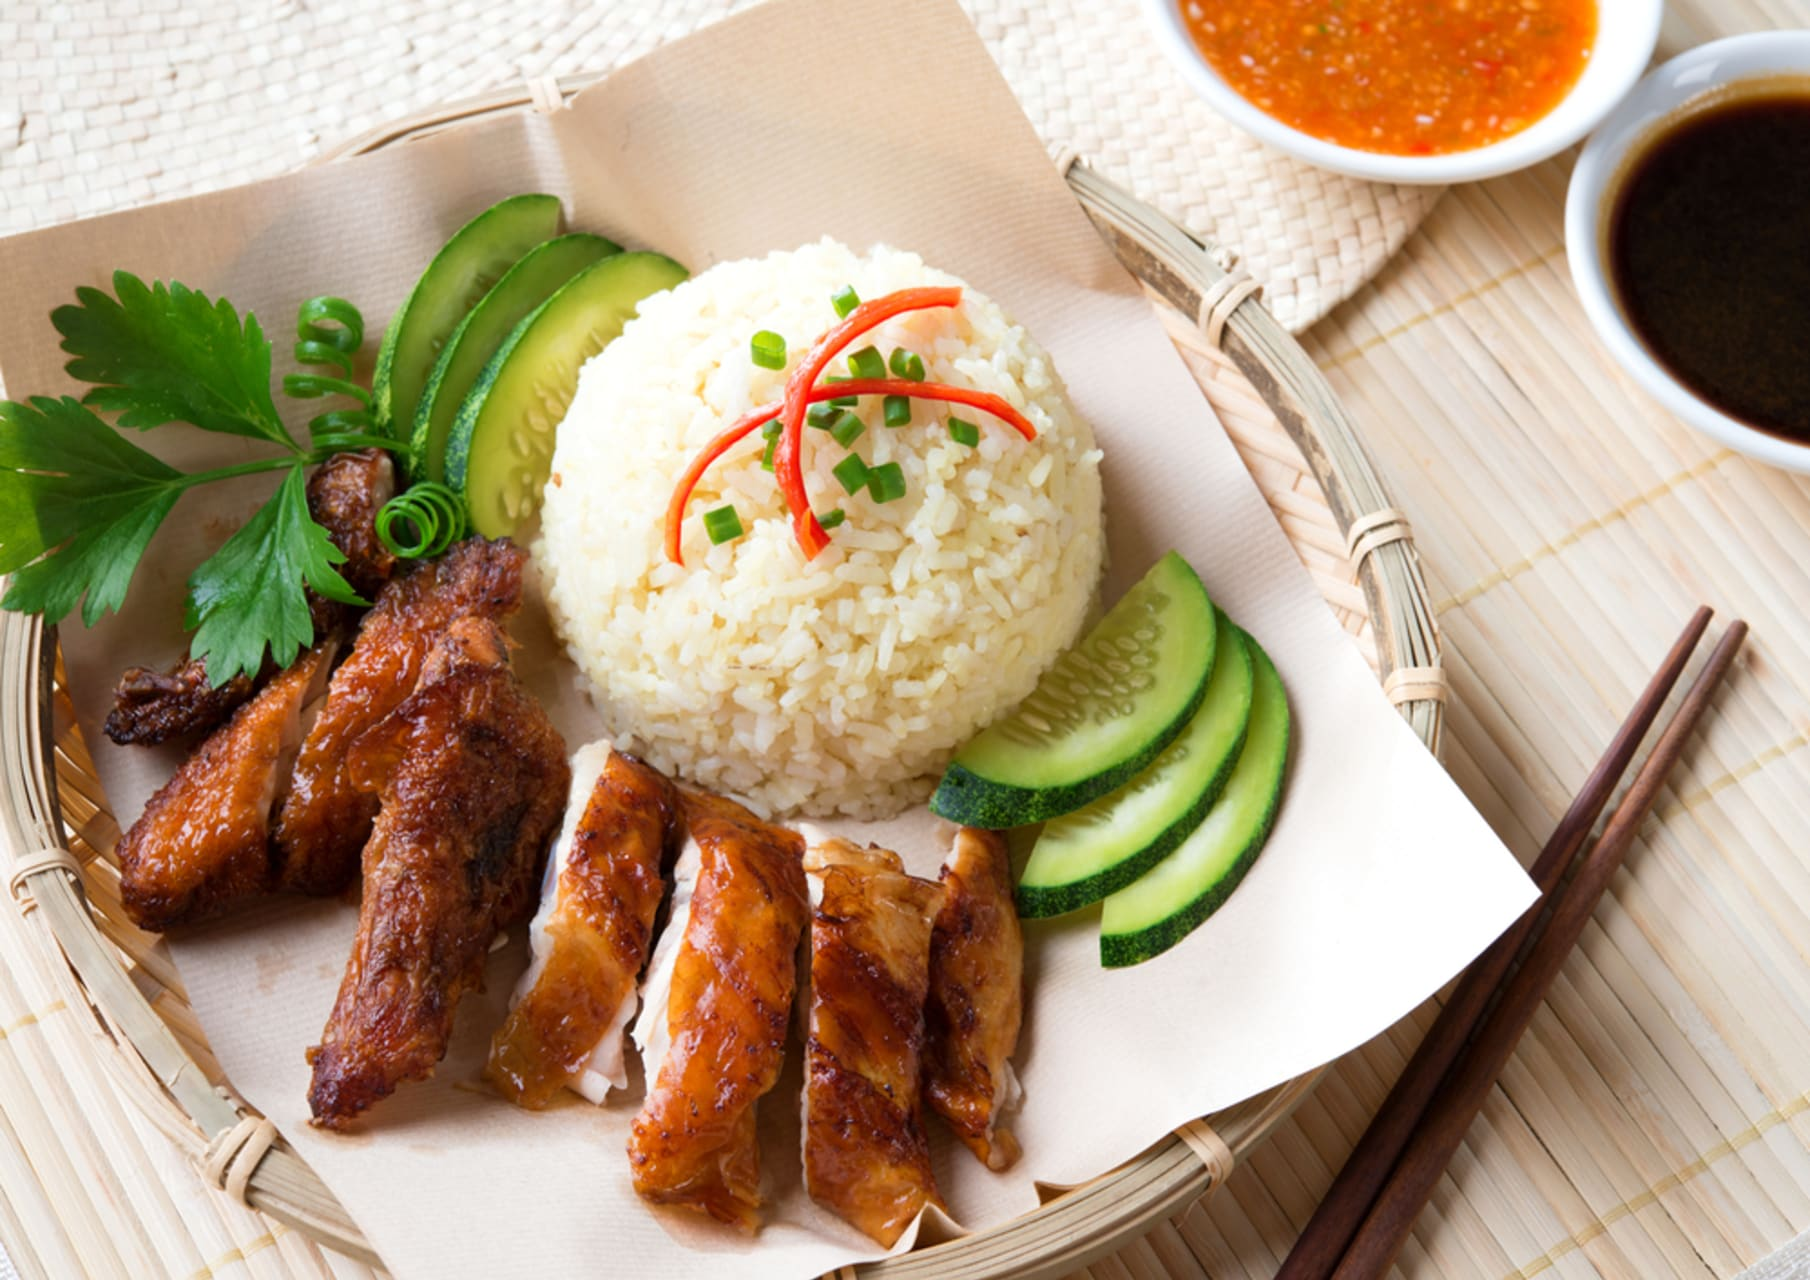 Singapore - Dinner Time: Cooking Singaporean Chicken Rice and Talk about Trade routes